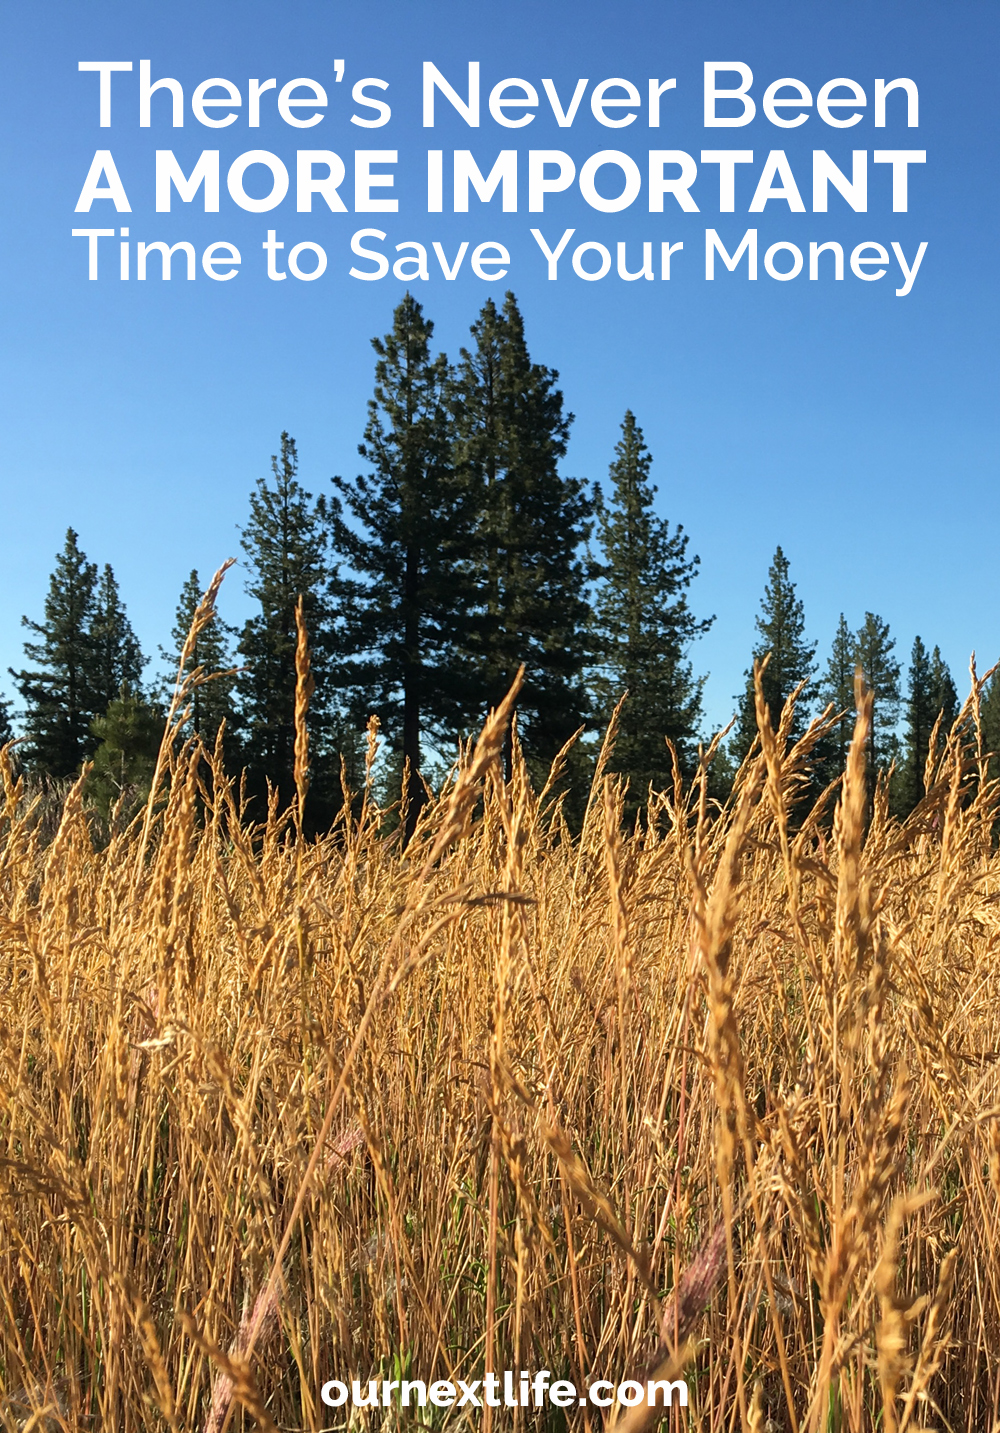 OurNextLife.com // There's never been a more important time to save your money! From increasing storms and rising sea levels to political unrest, there are so many reasons to build up your savings. Being able to help yourself and help others in times of need are priceless.